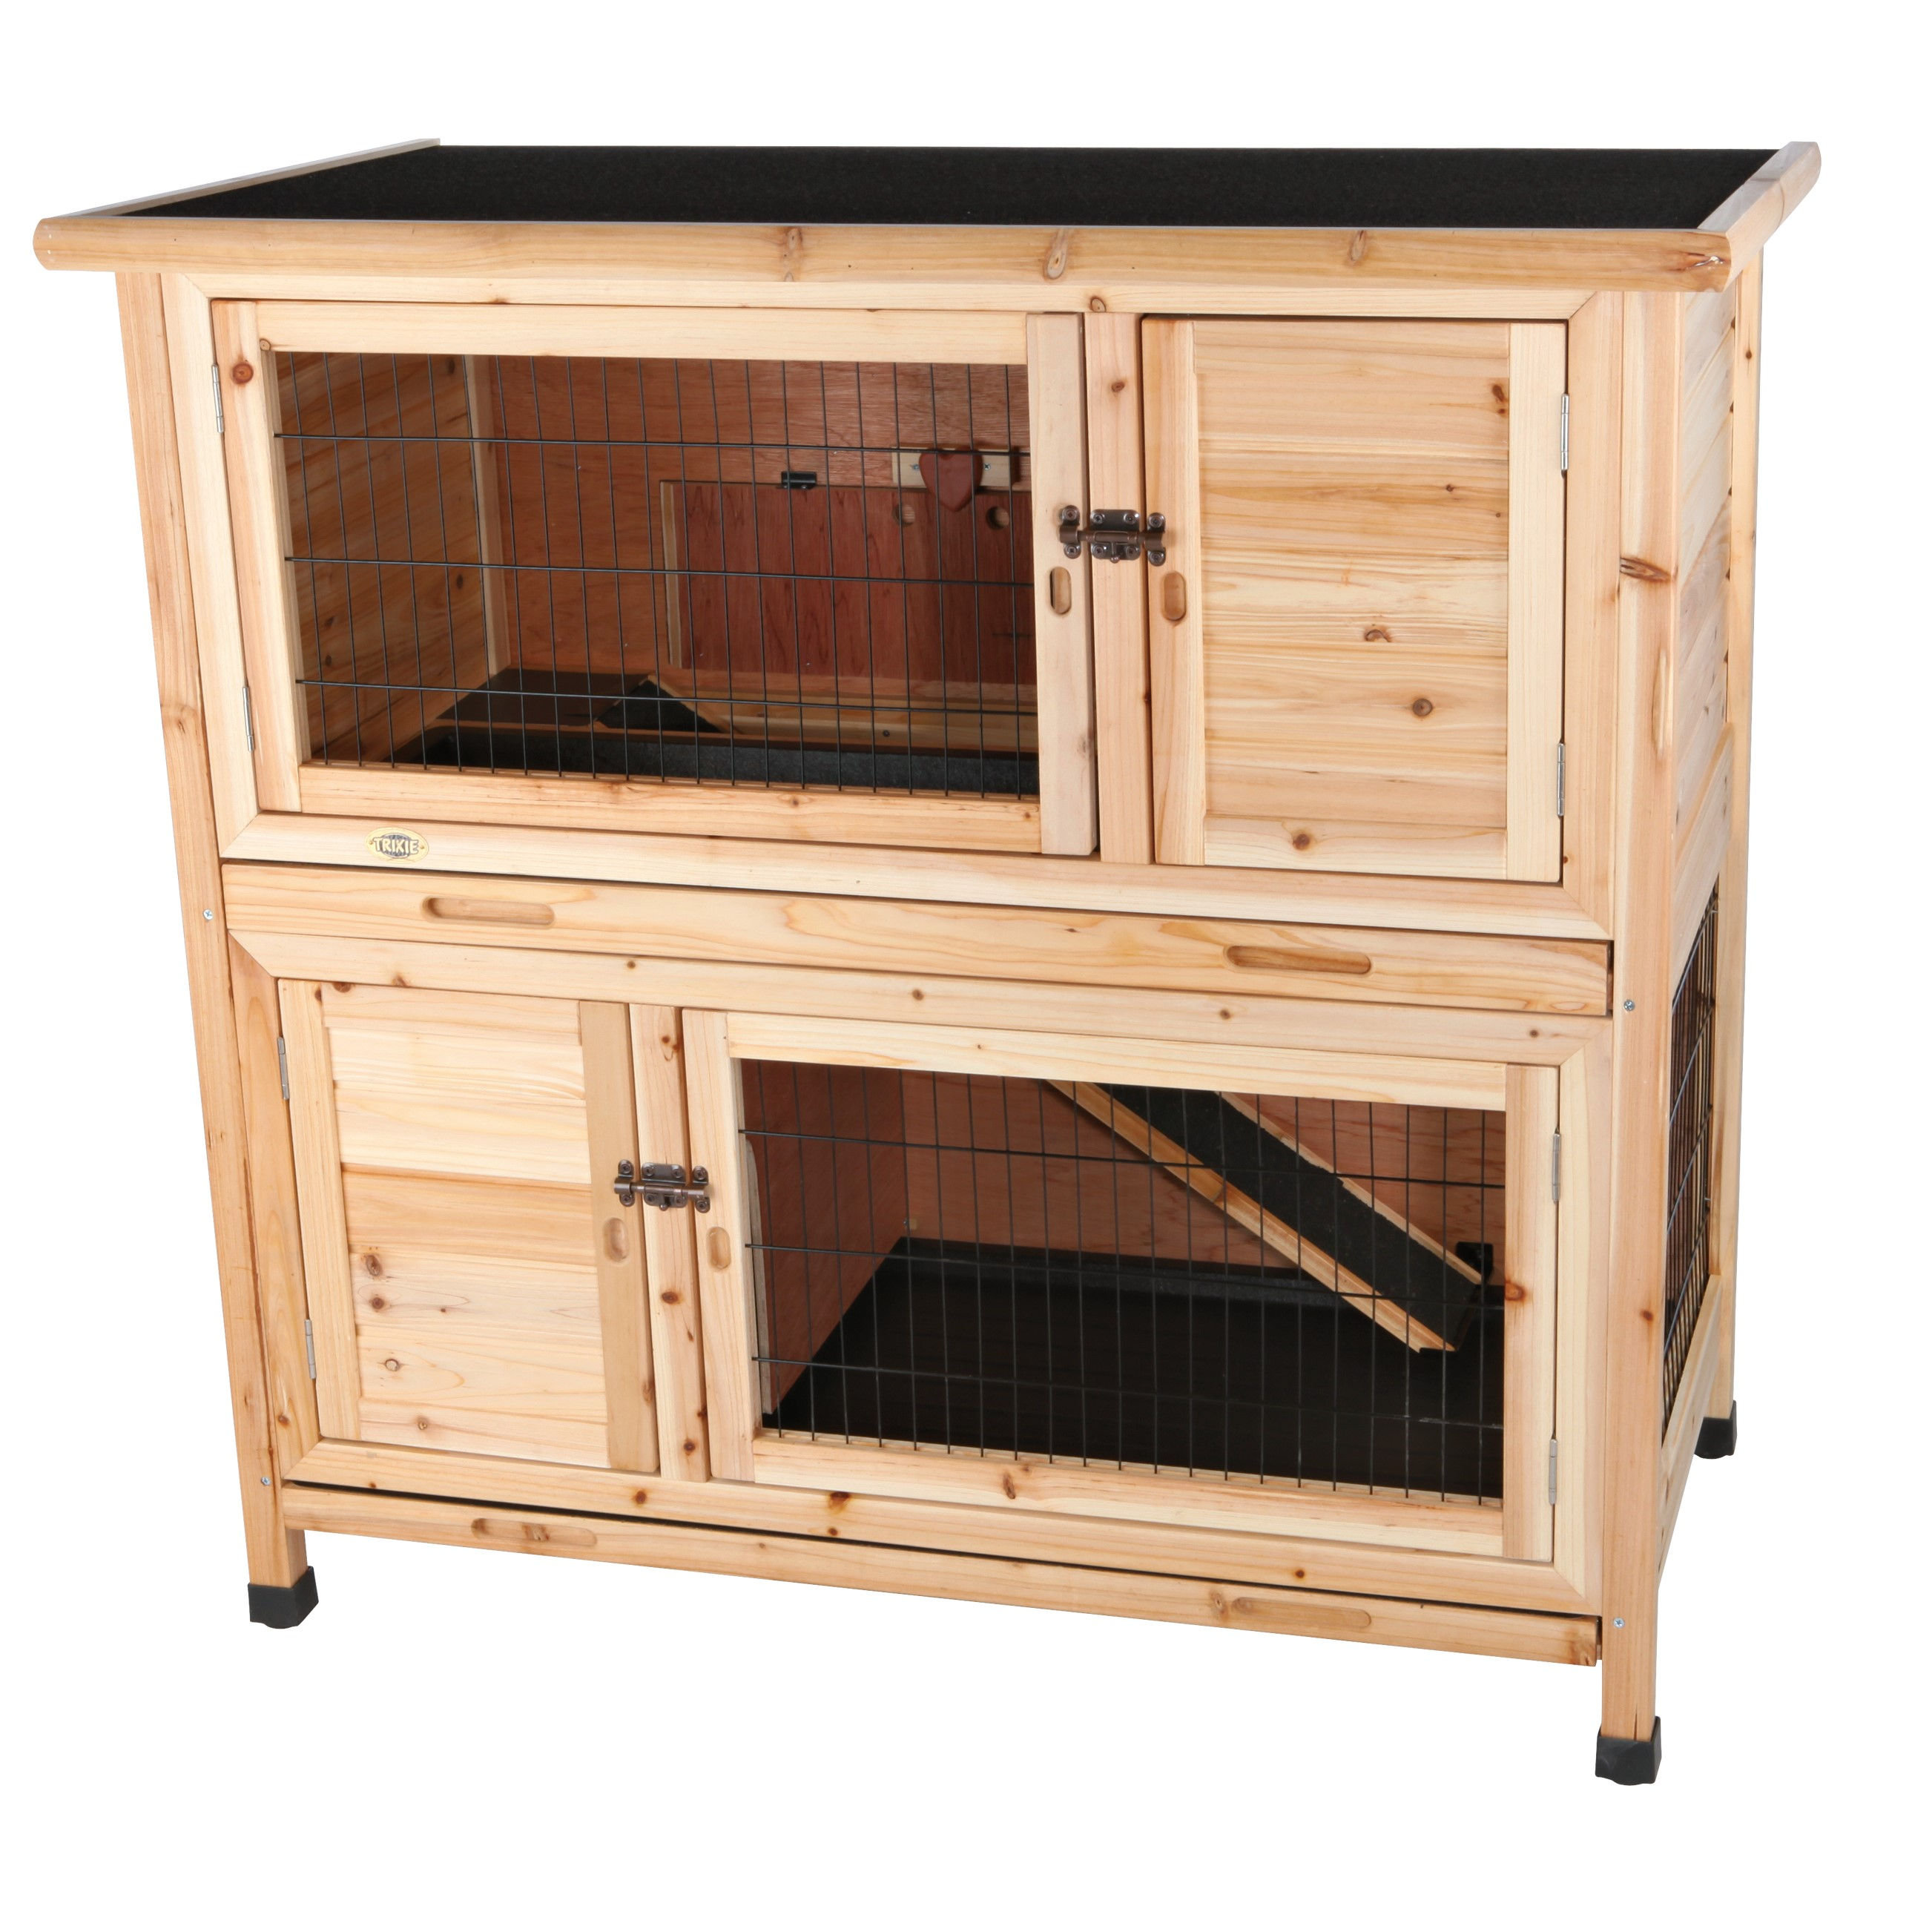 and pet hutches animal buy rabbit luxury s w pig run guinea remaining coop m h chicken double house hutch wooden new